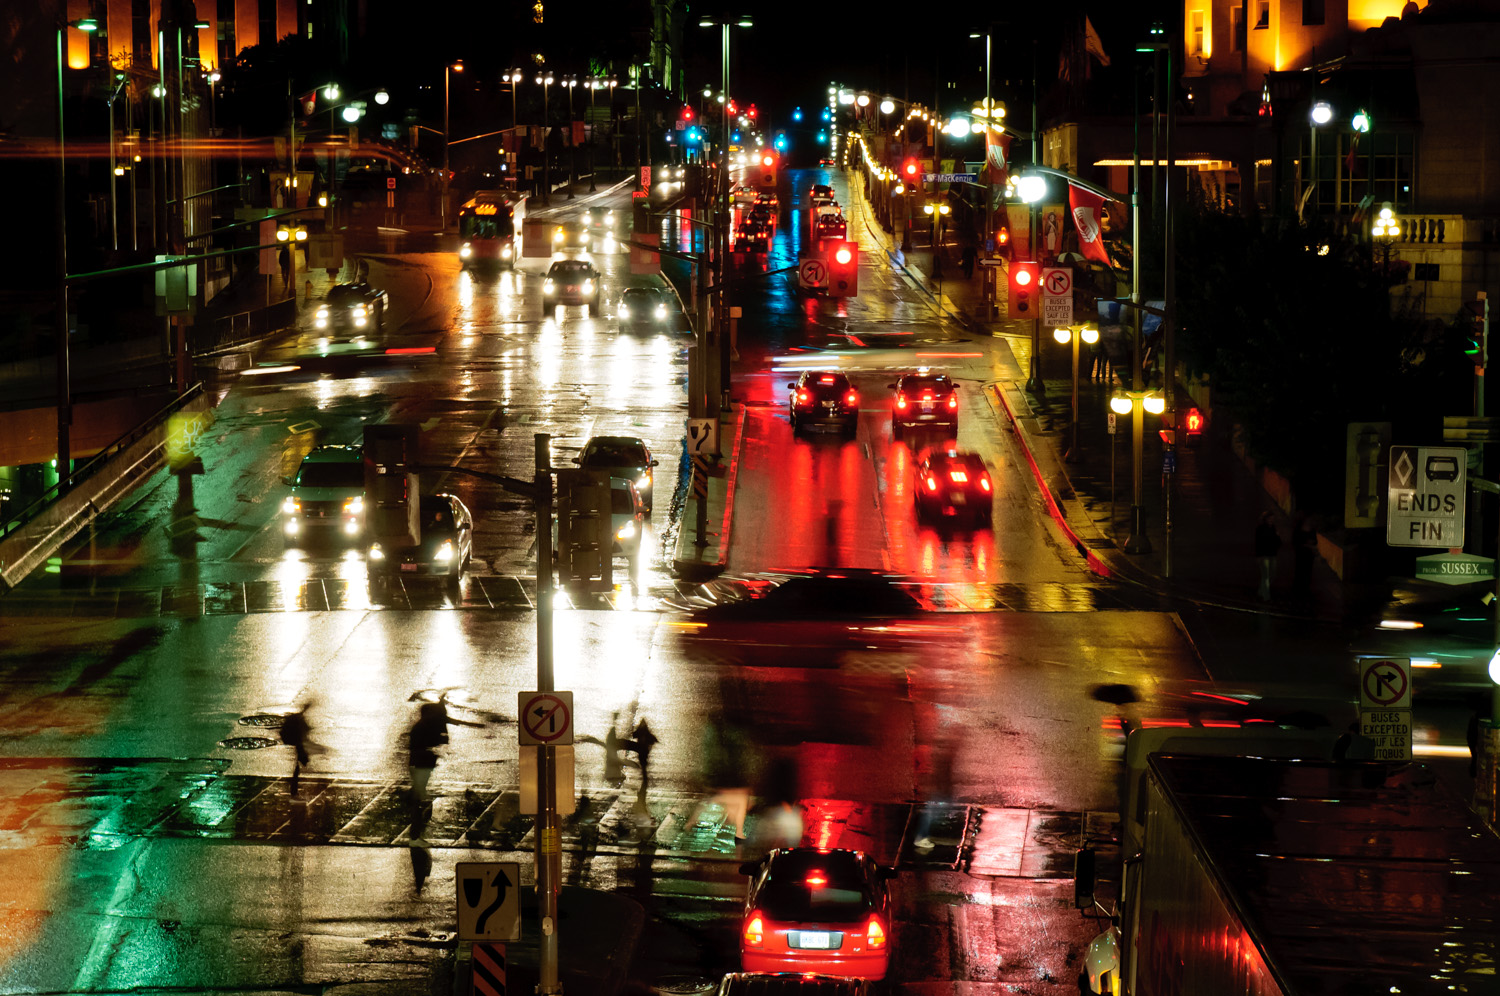 Rainy night on Rideau Street (2)